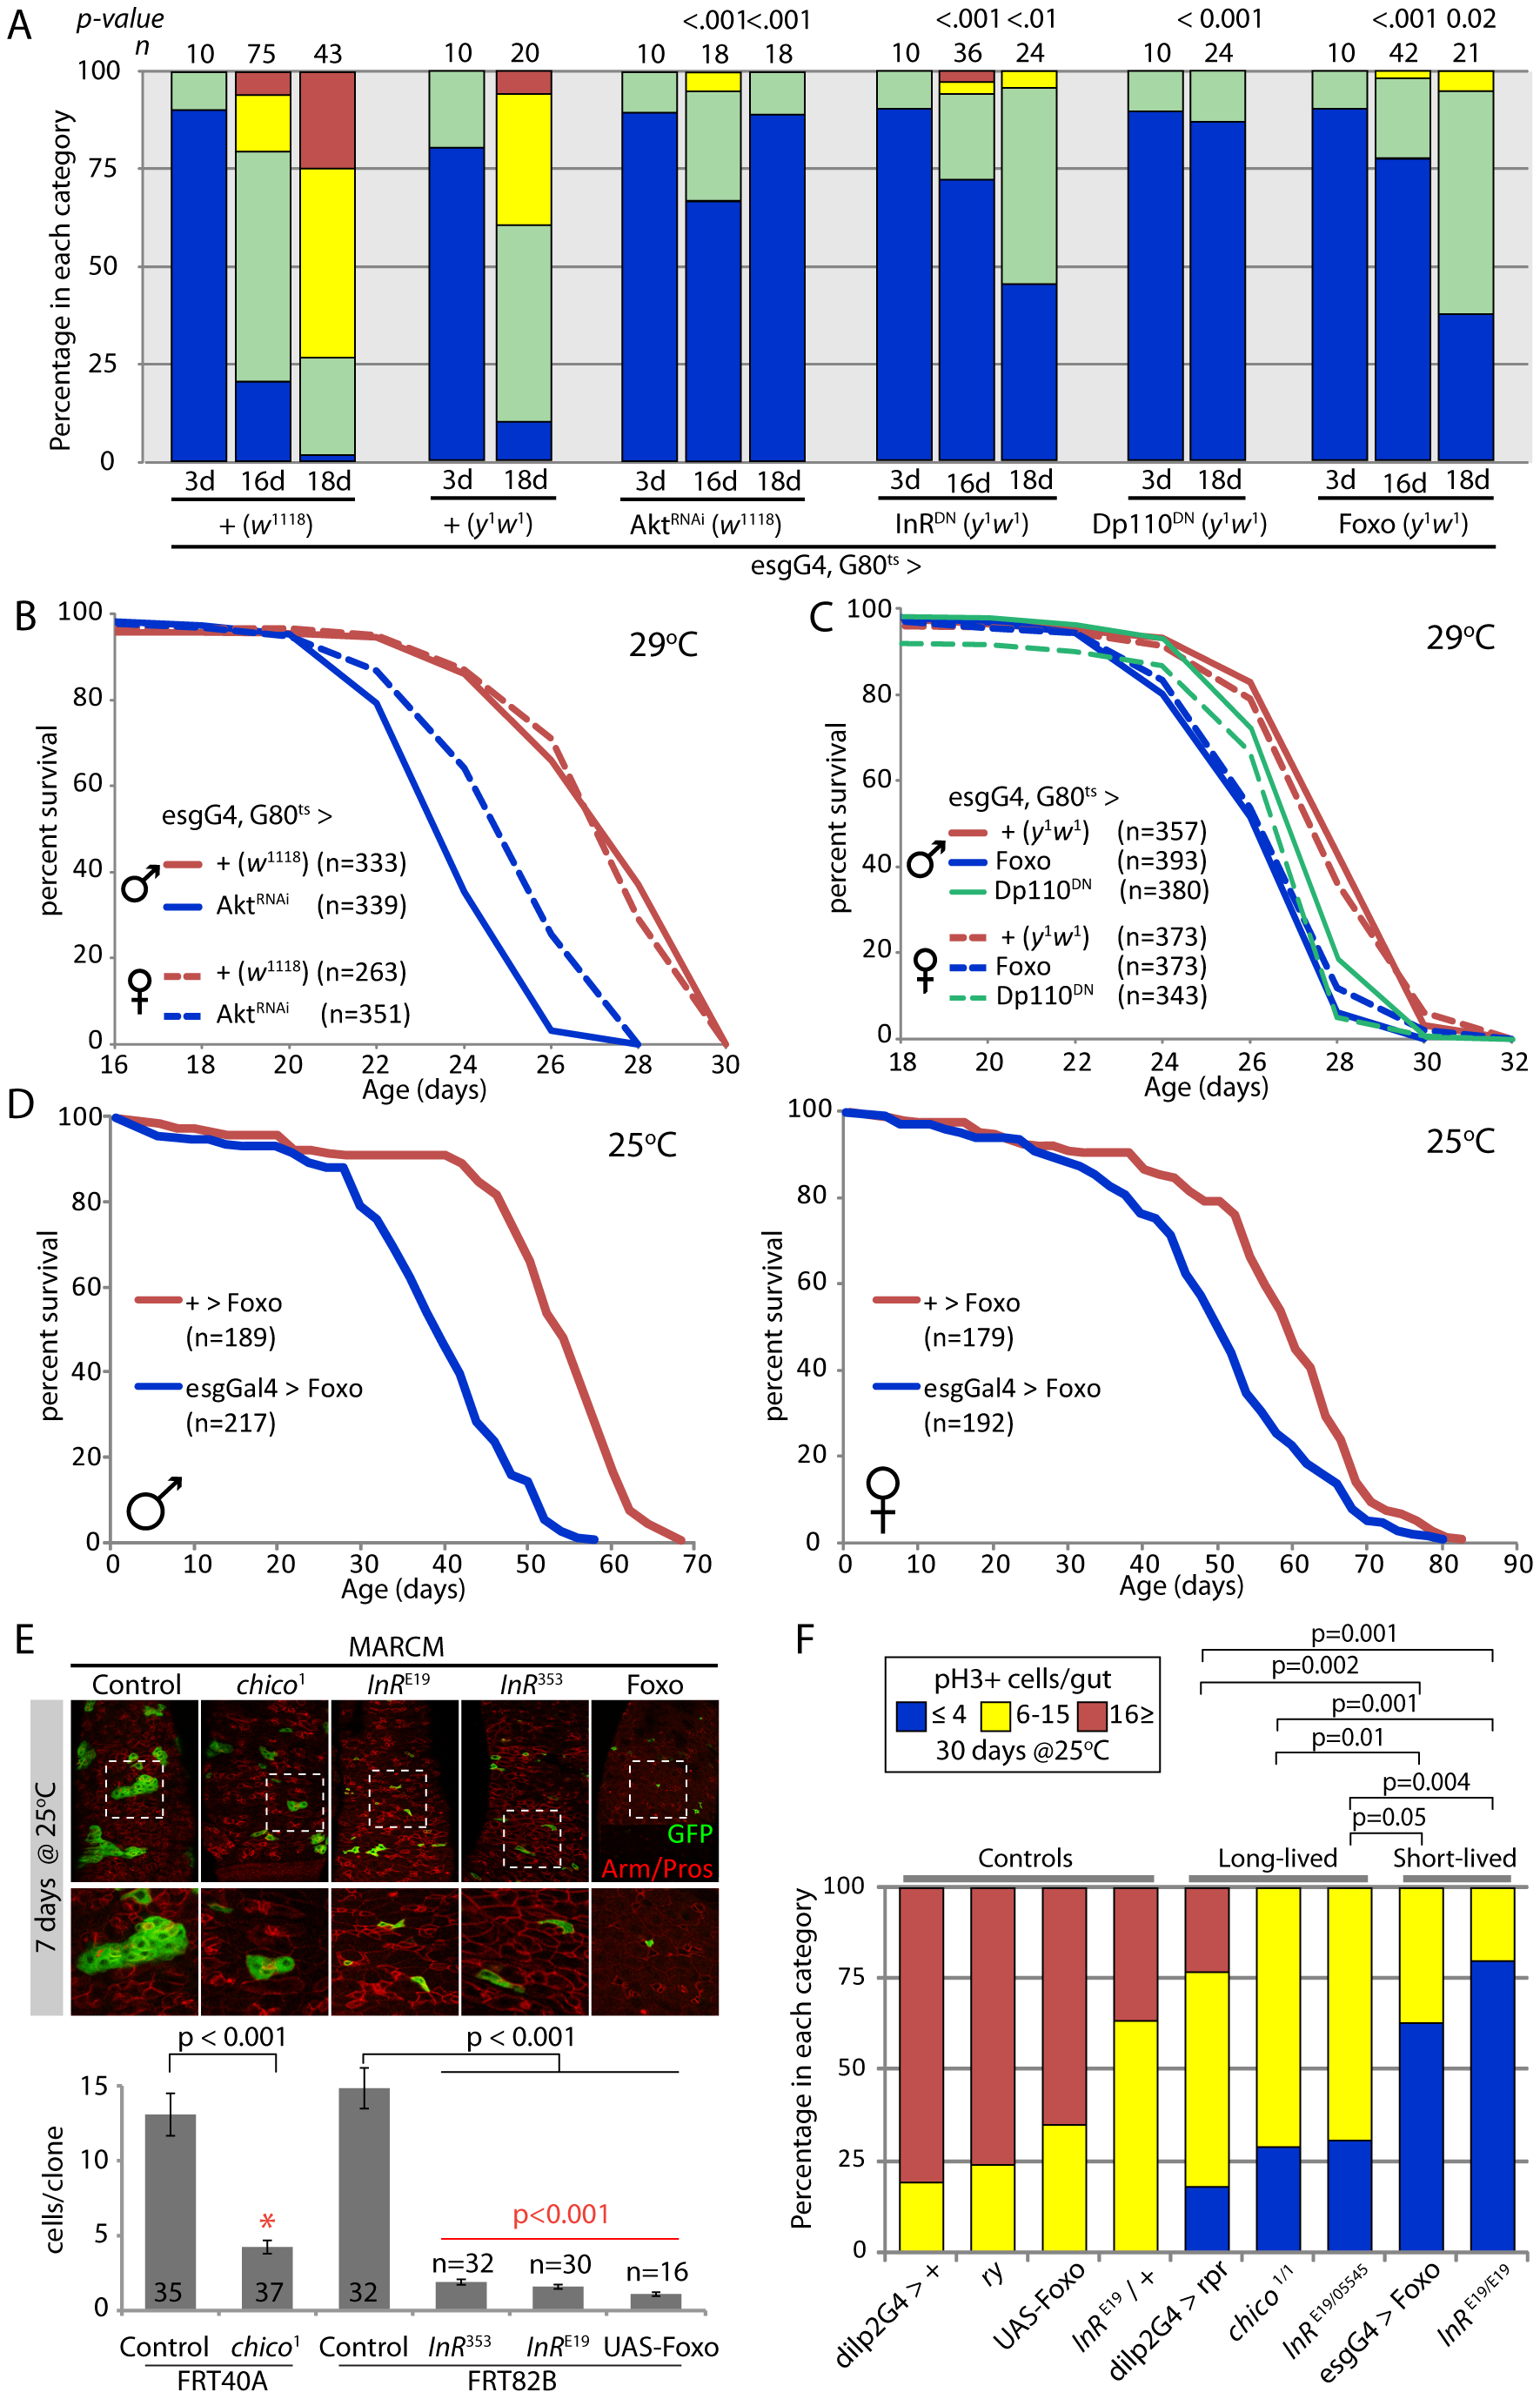 Strong reduction of insulin signaling in the somatic stem cell lineages delays age-related dysplasia and shortens lifespan.